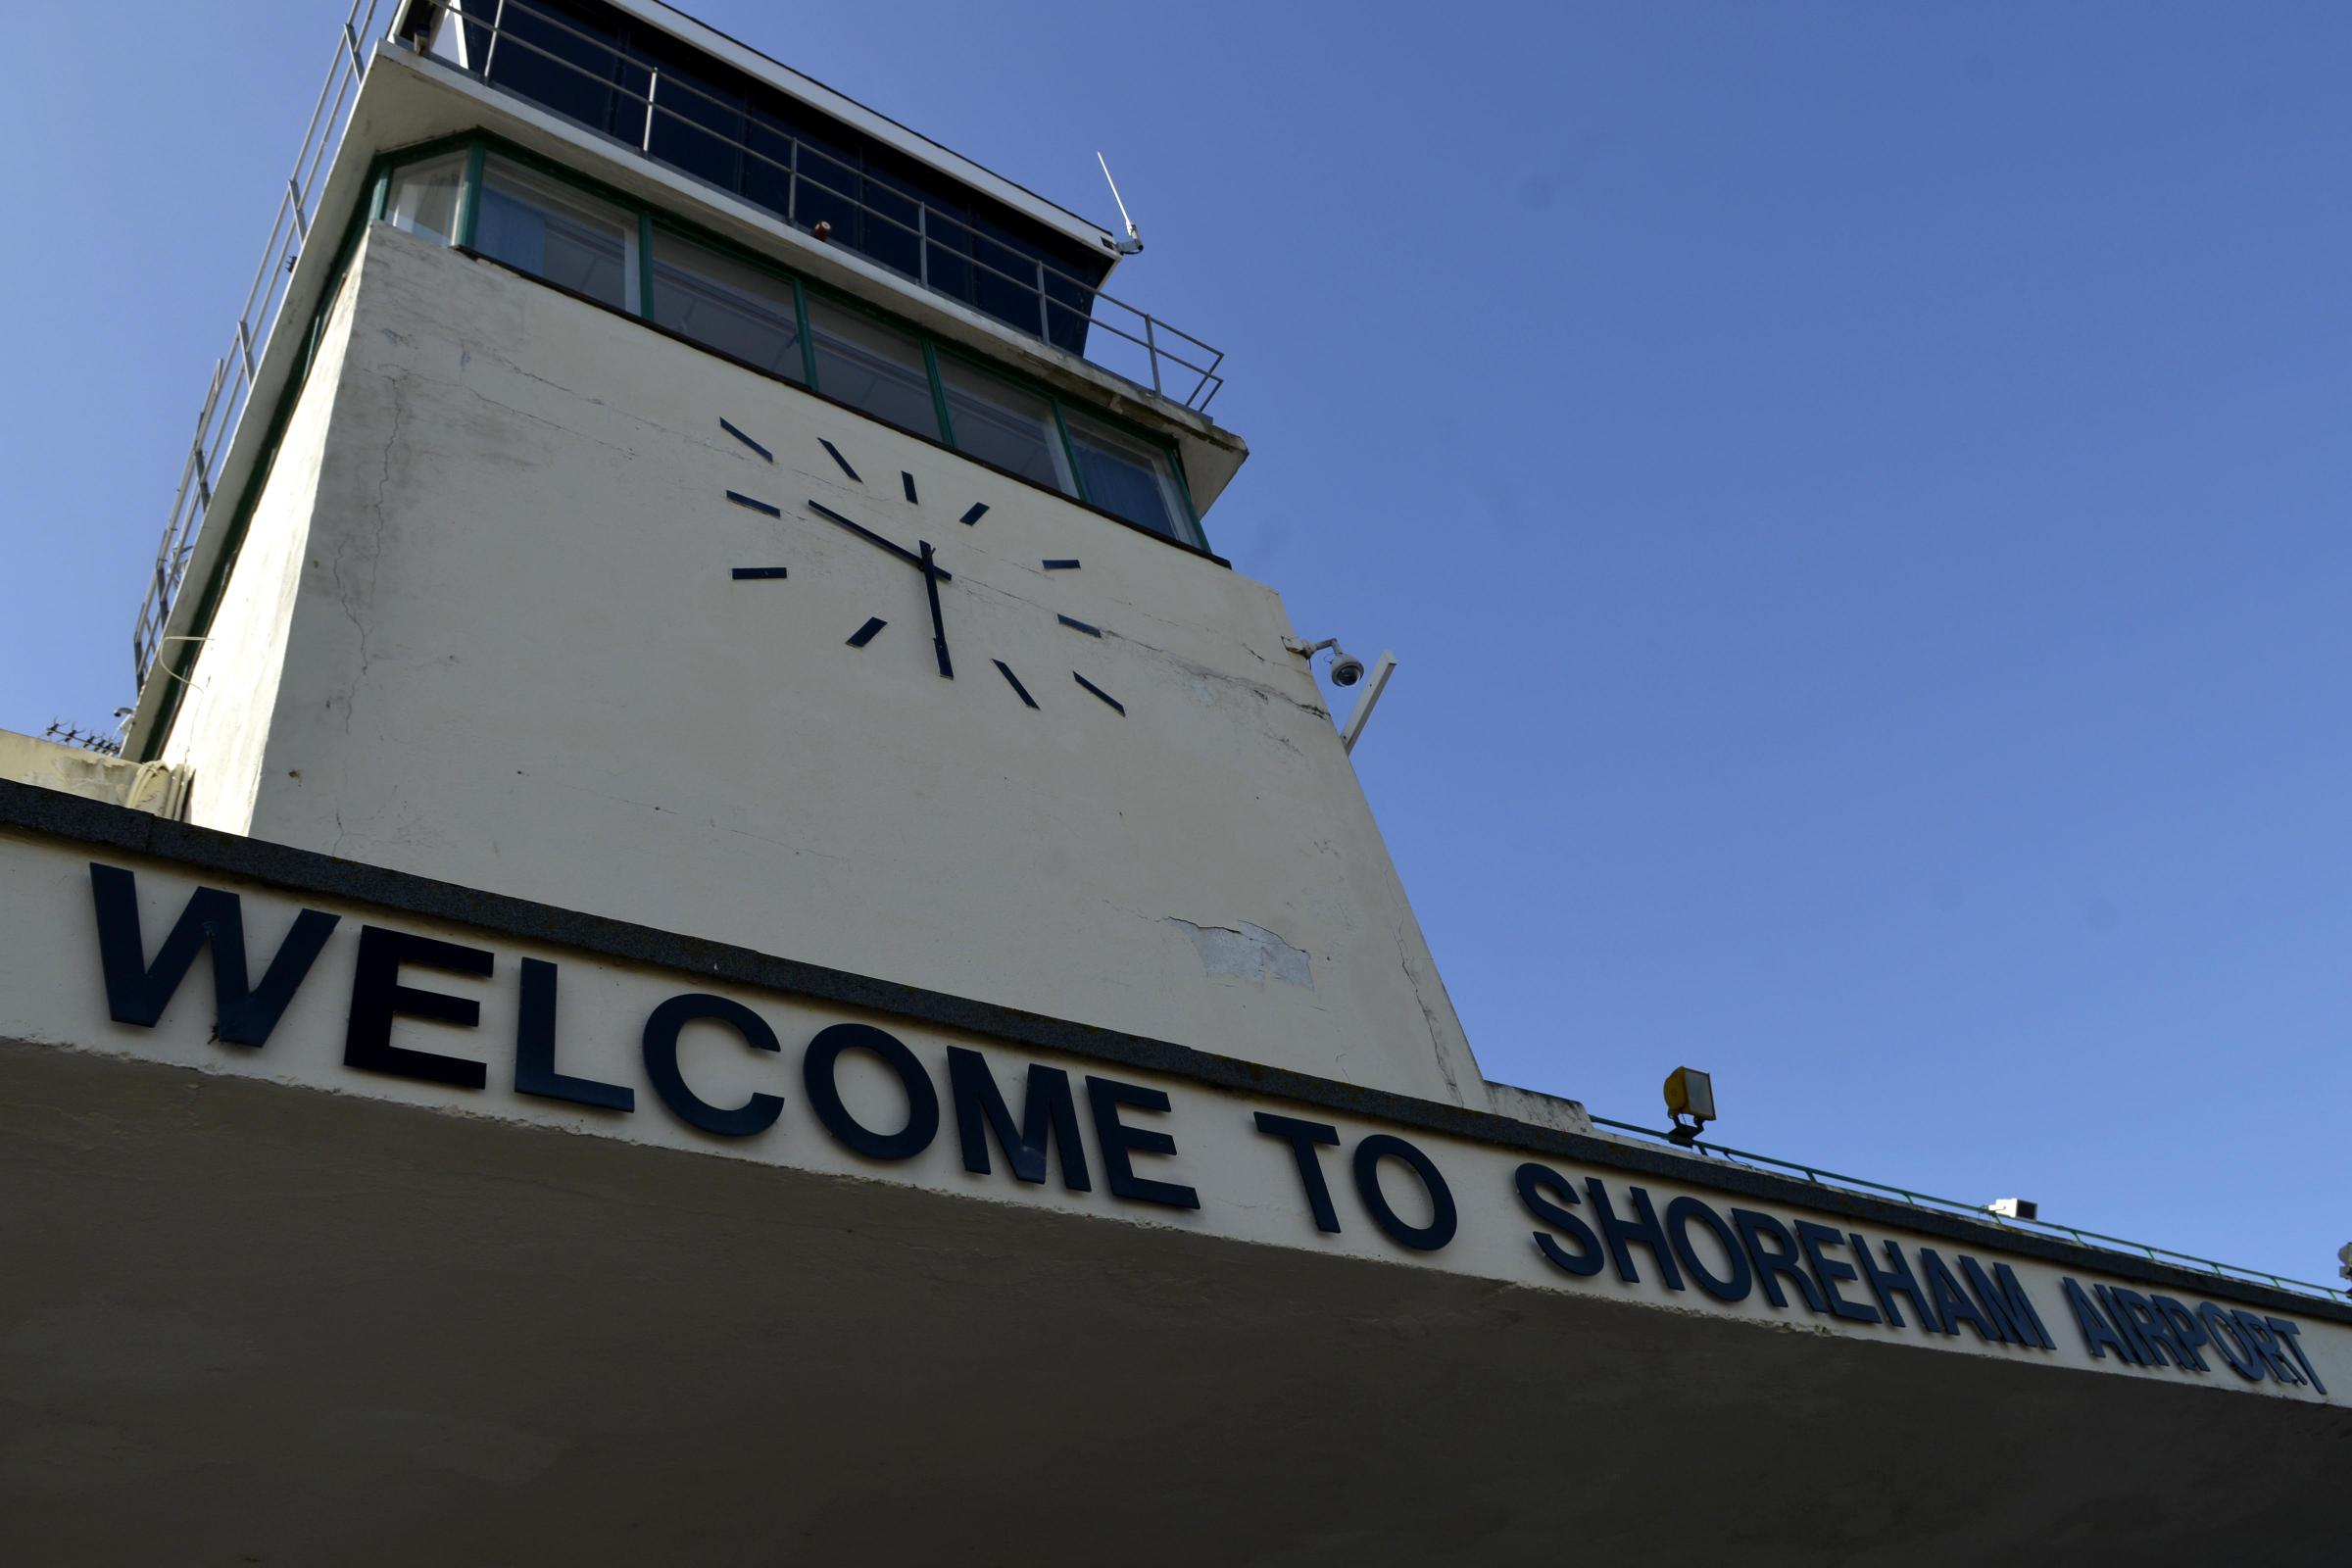 Plans submitted for multi-million pound development of Shoreham Airport